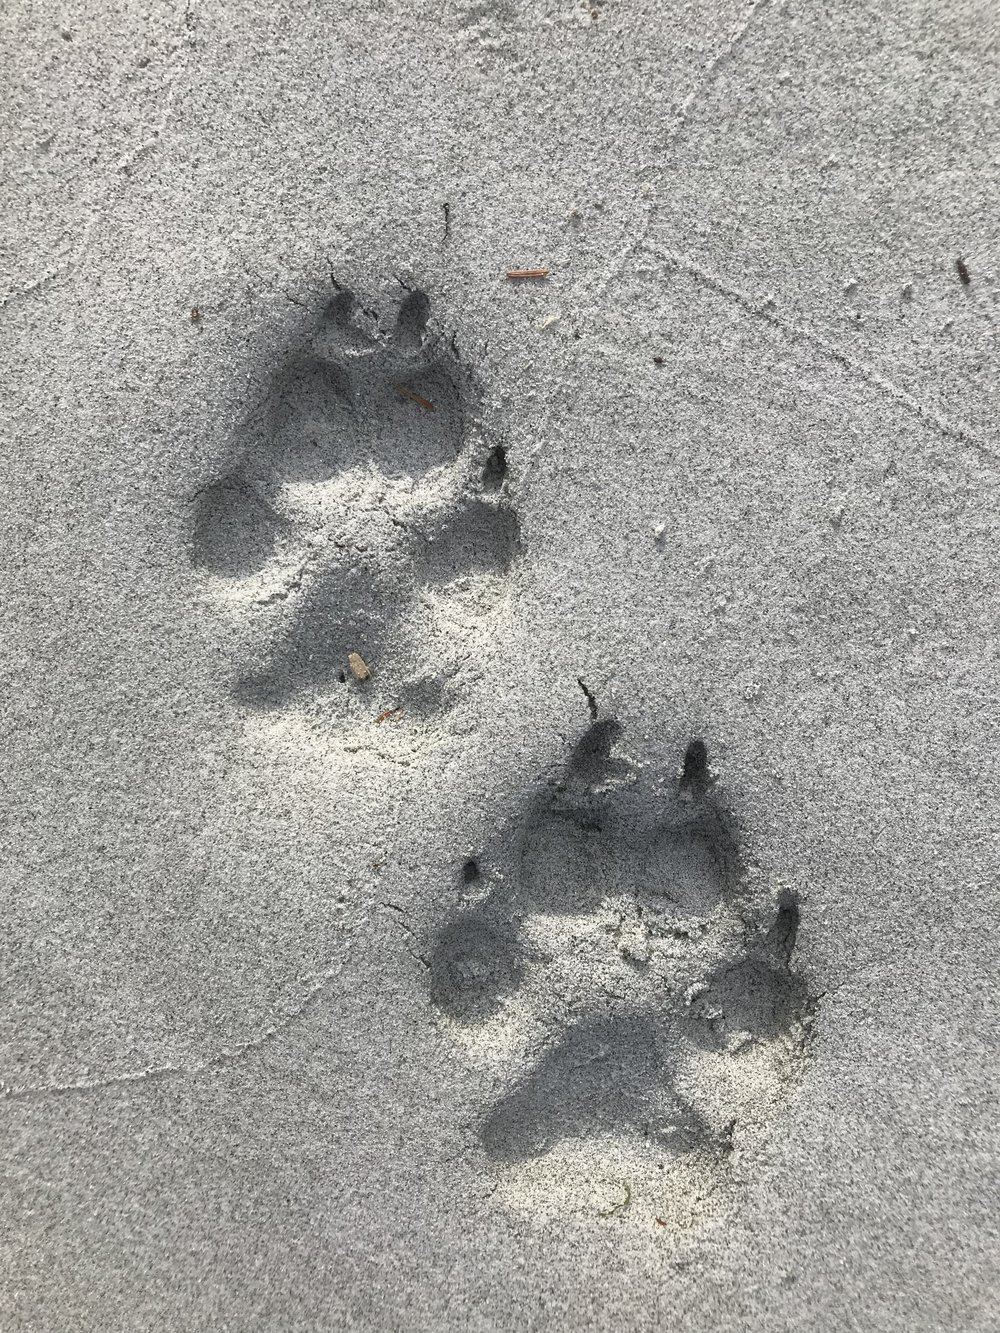 Wolf tracks in the sand.